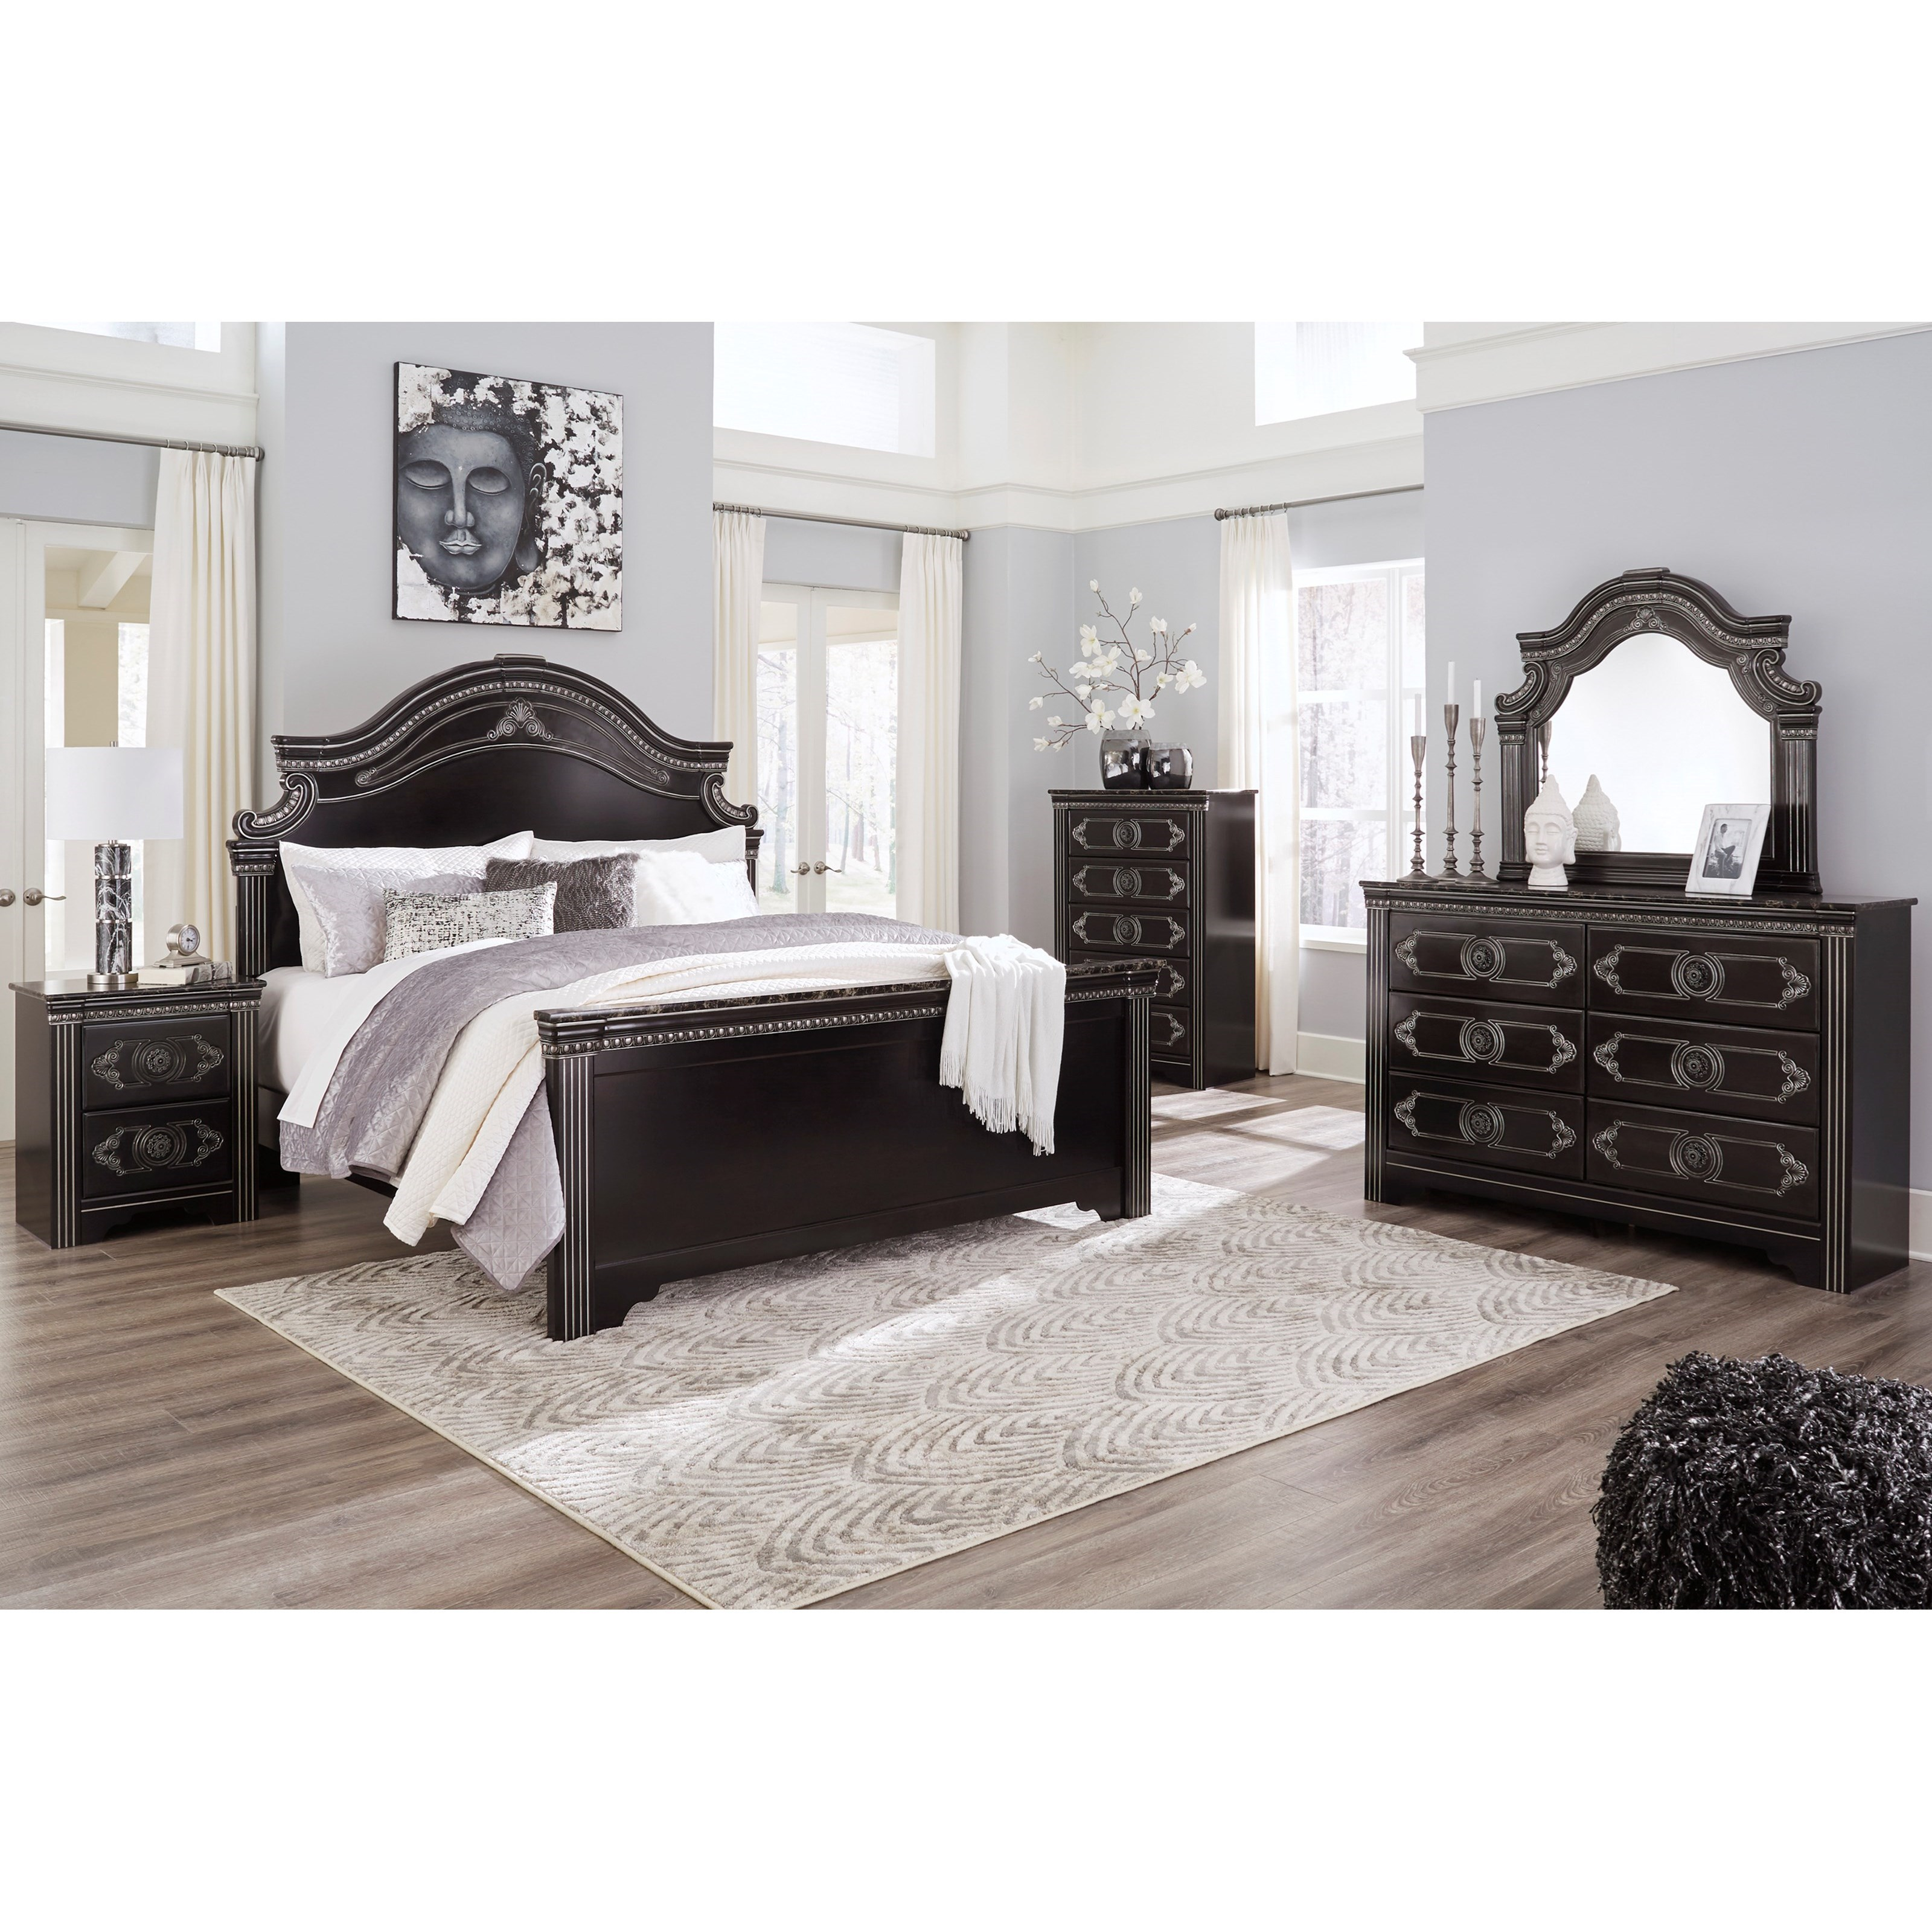 Banalski King Bedroom Group by Signature Design by Ashley at Zak's Warehouse Clearance Center